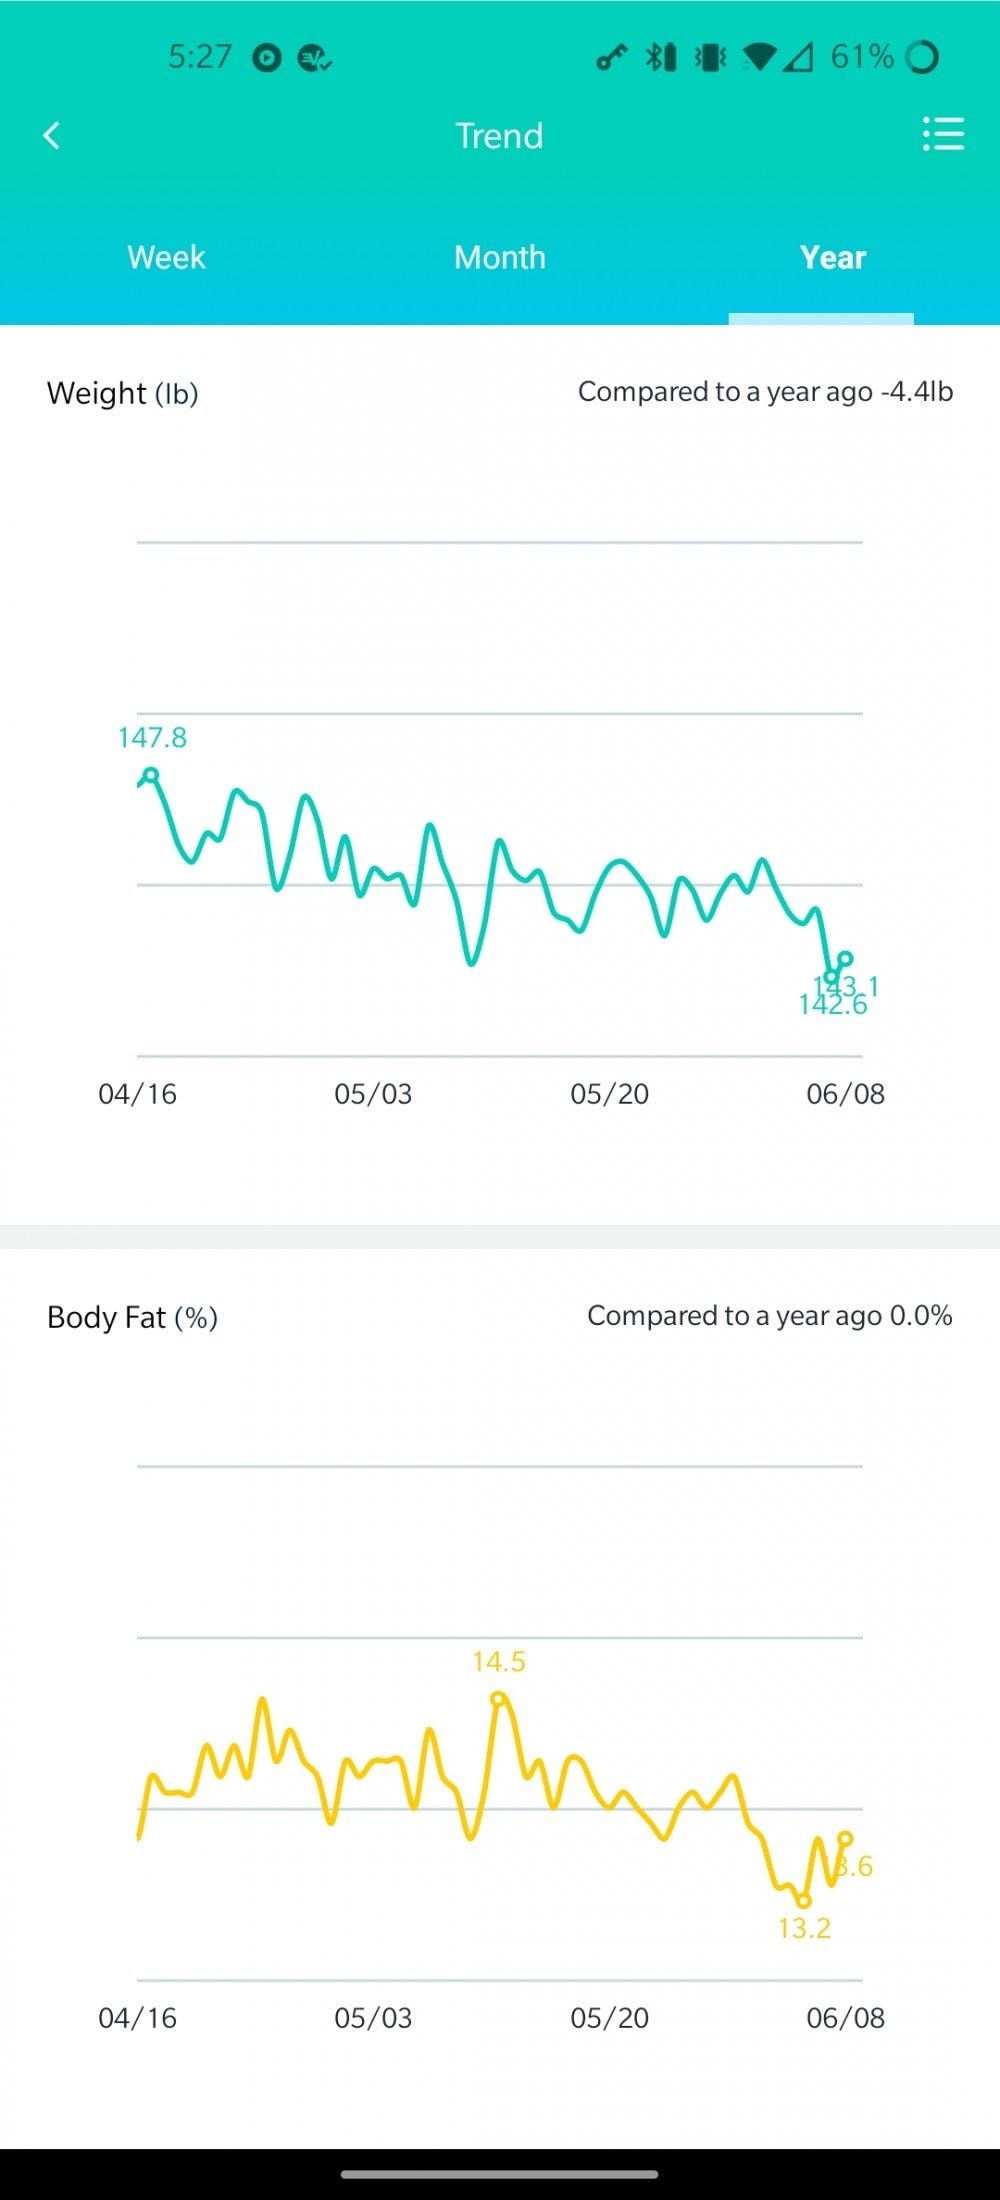 A screenshot of the Wyze Scale app showing yearly trends